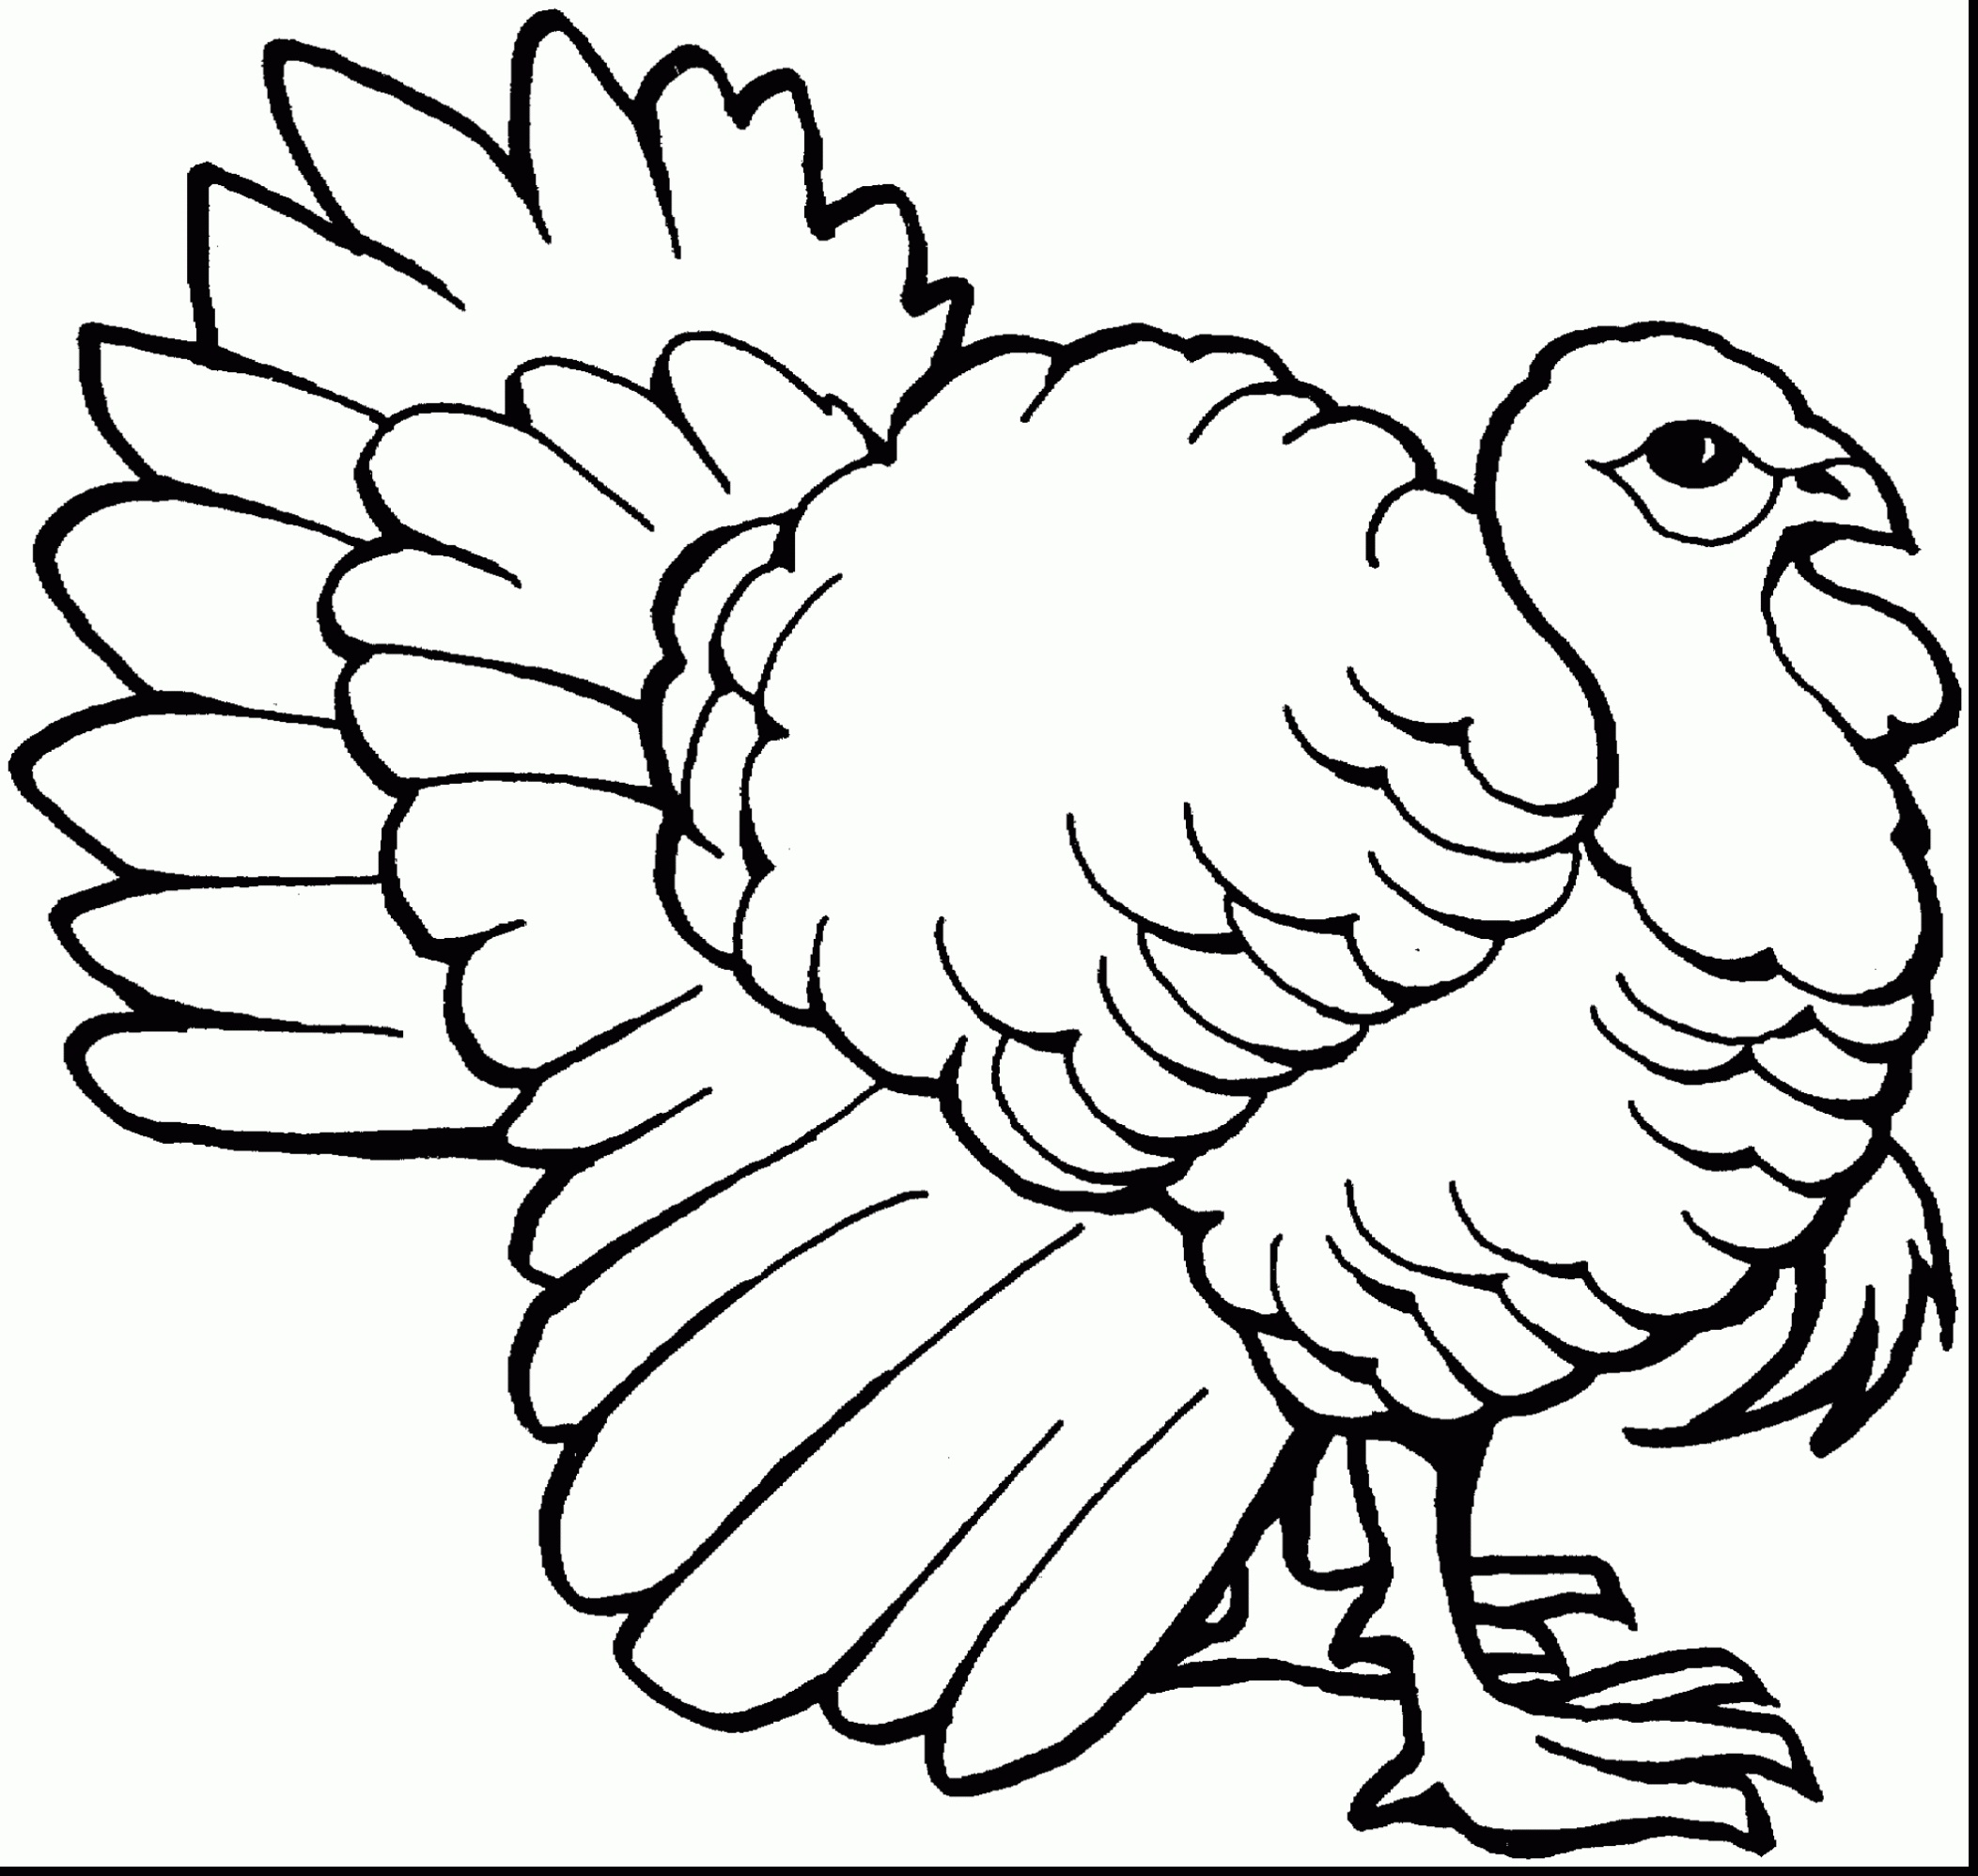 Coloring Ideas : Kidsoring Turkey Page Thanksgiving Books For First - Free Printable Thanksgiving Books